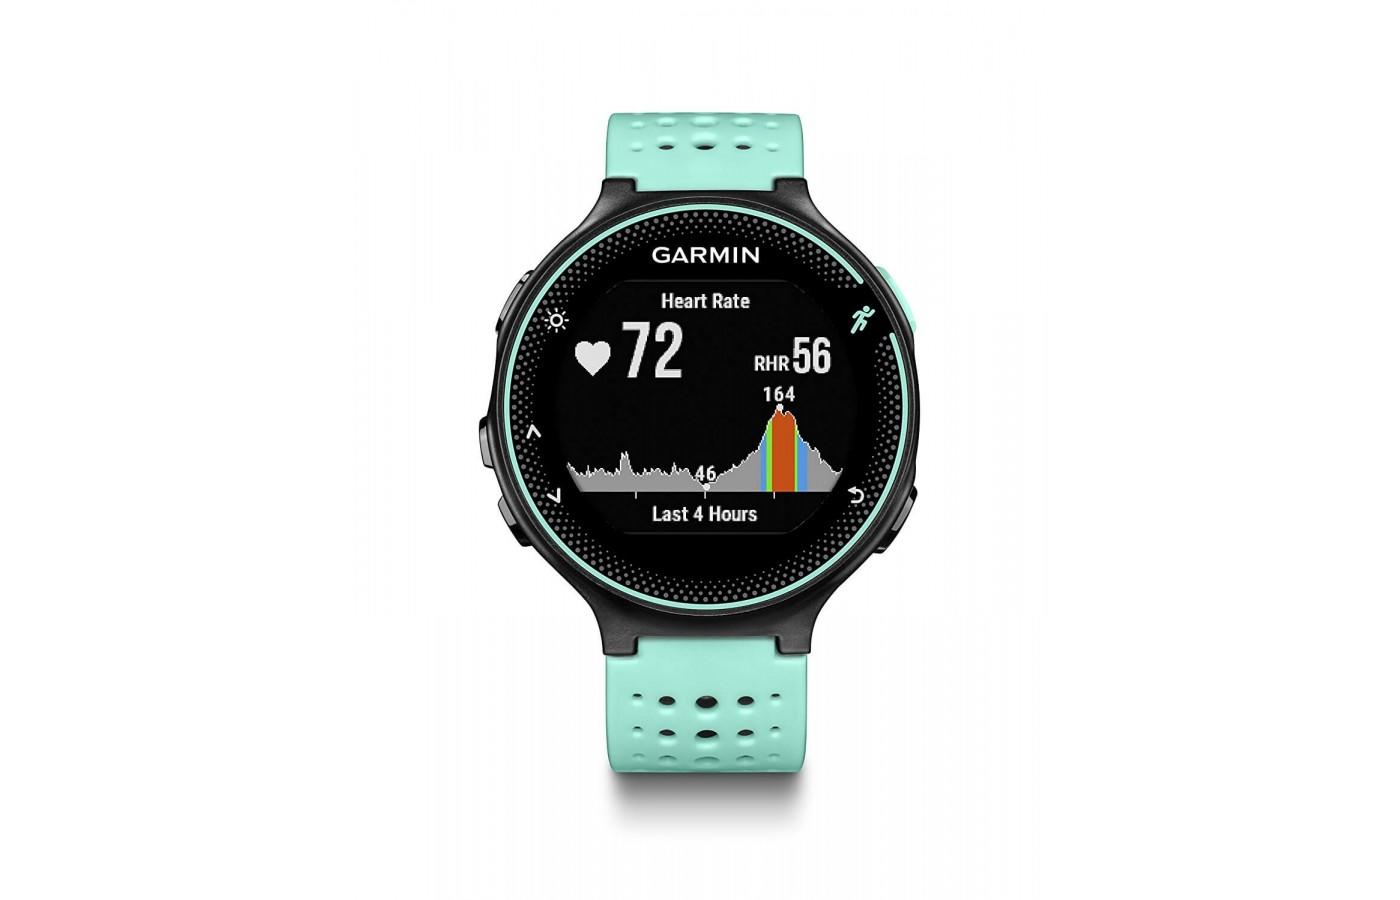 Garmin Forerunner 235 heart rate monitoring